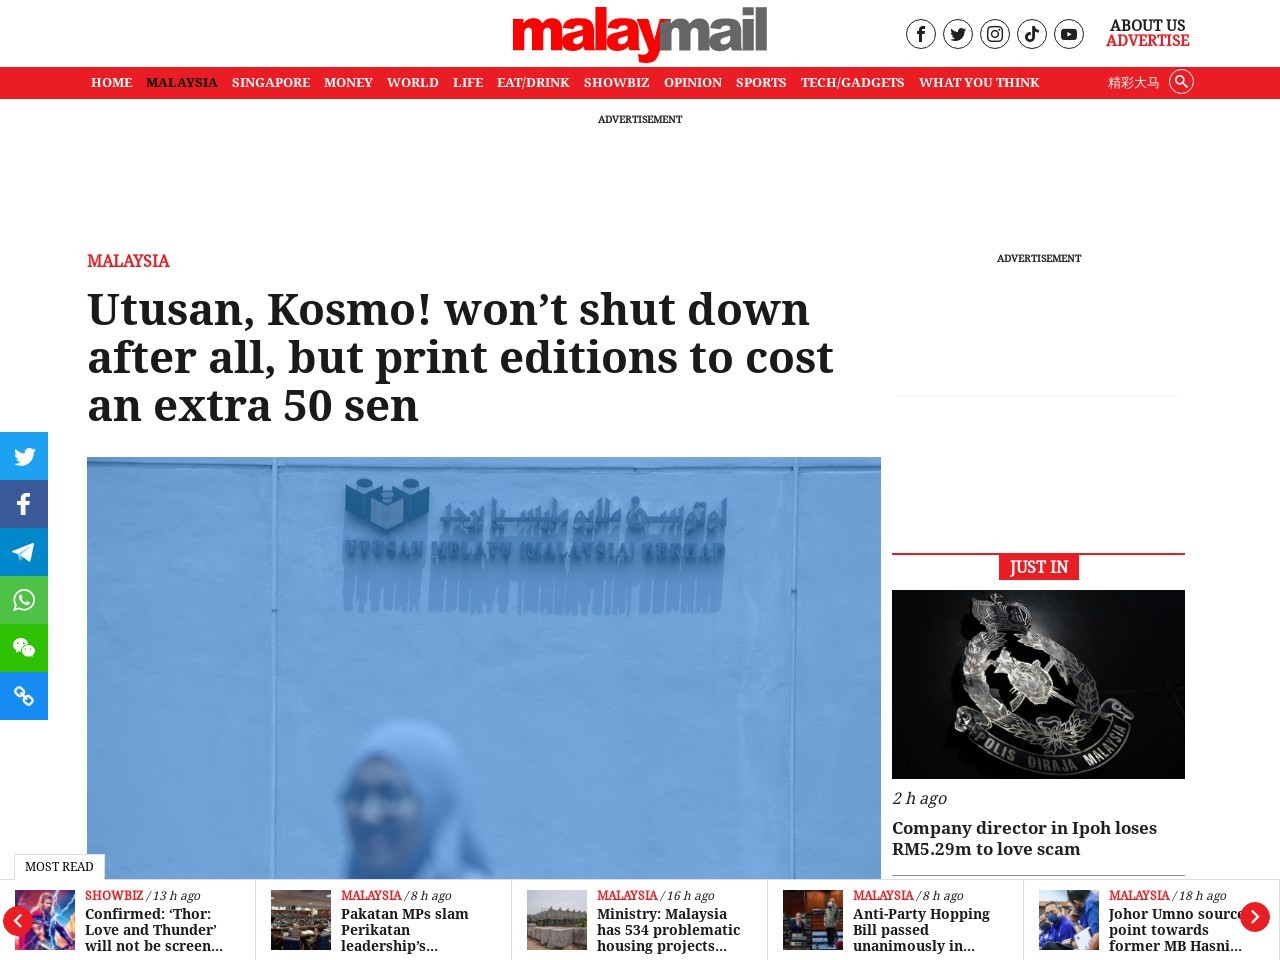 Utusan, Kosmo! won't shut down after all, but print editions to cost…